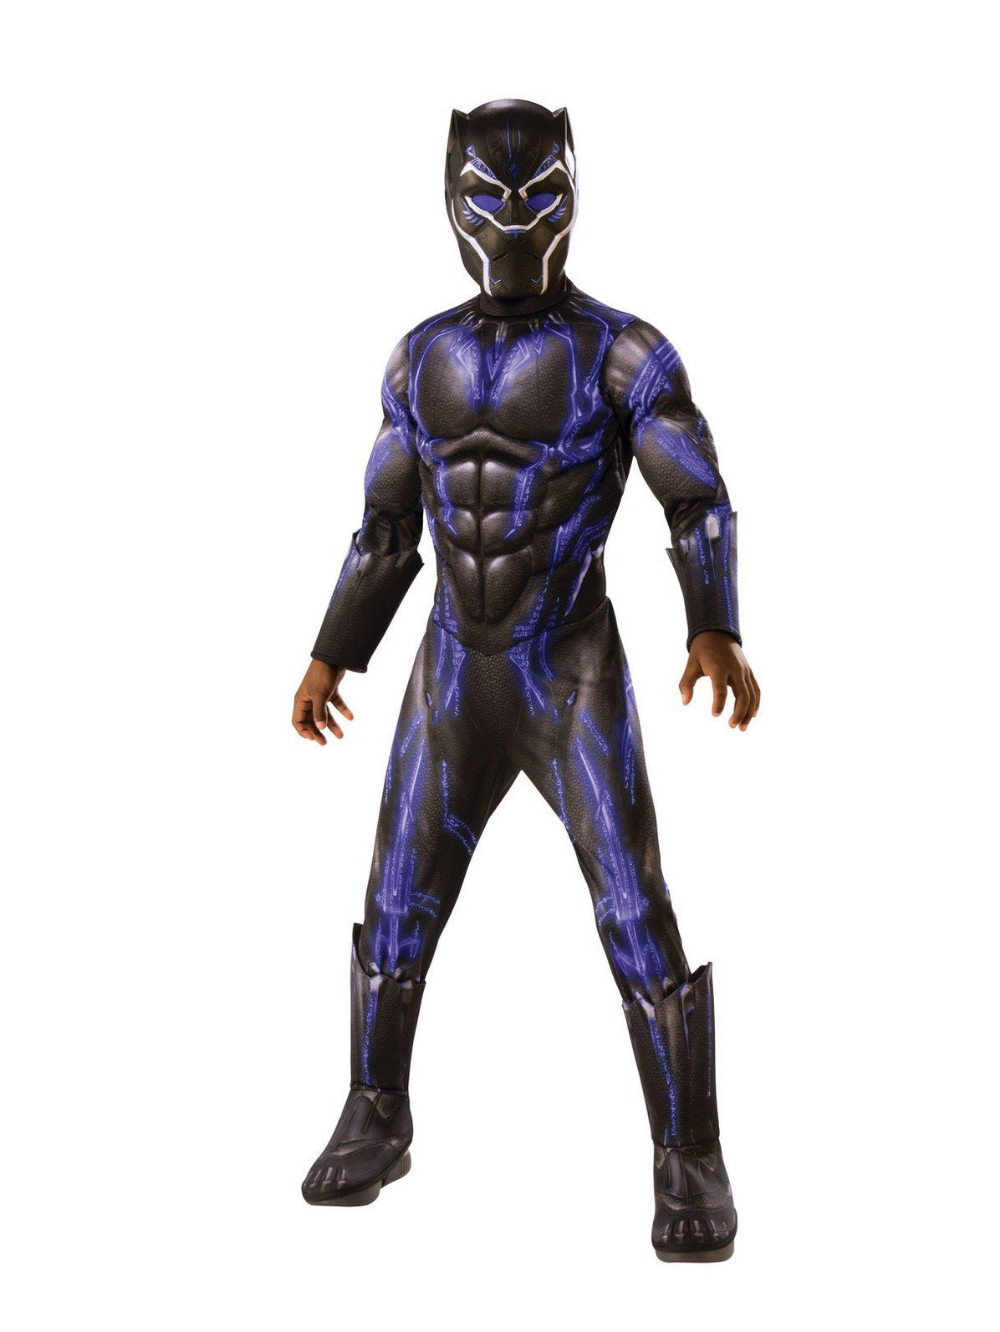 Avengers Endgame Black Panther Purple Battle Deluxe Child Costume Black Panther Halloween Costume Panther Costume Boy Costumes